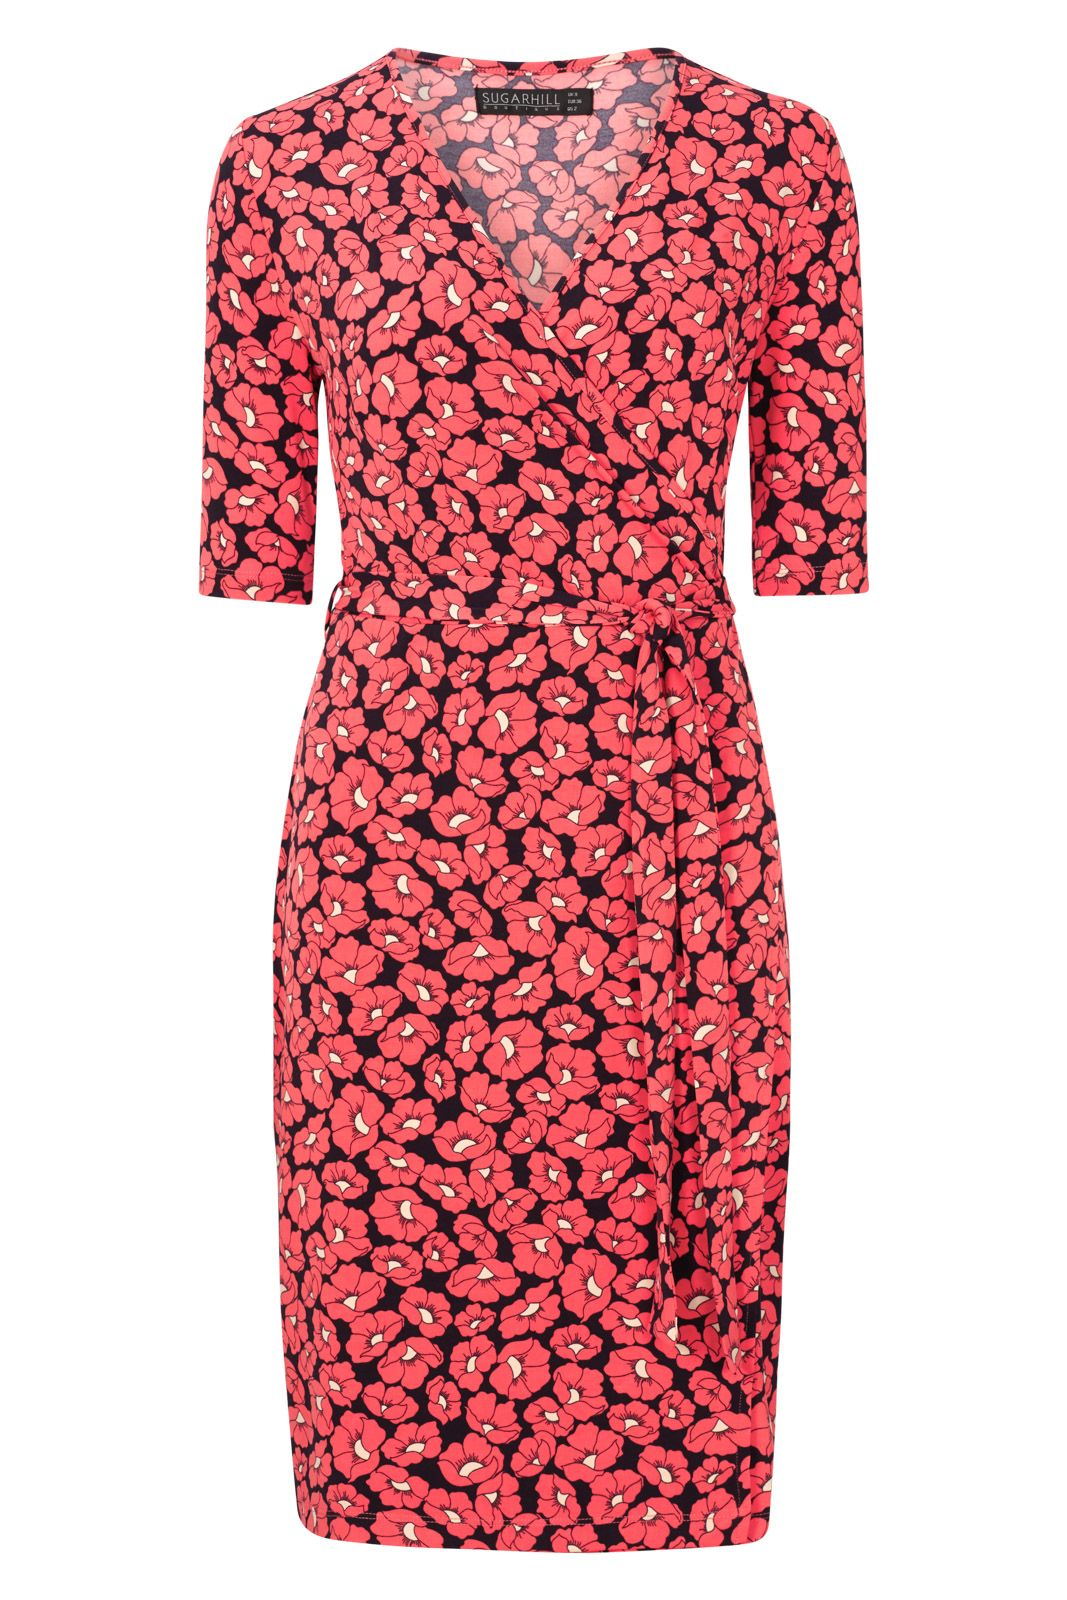 Sugarhill Boutique Marian Floral Jersey Wrap Dress, Red